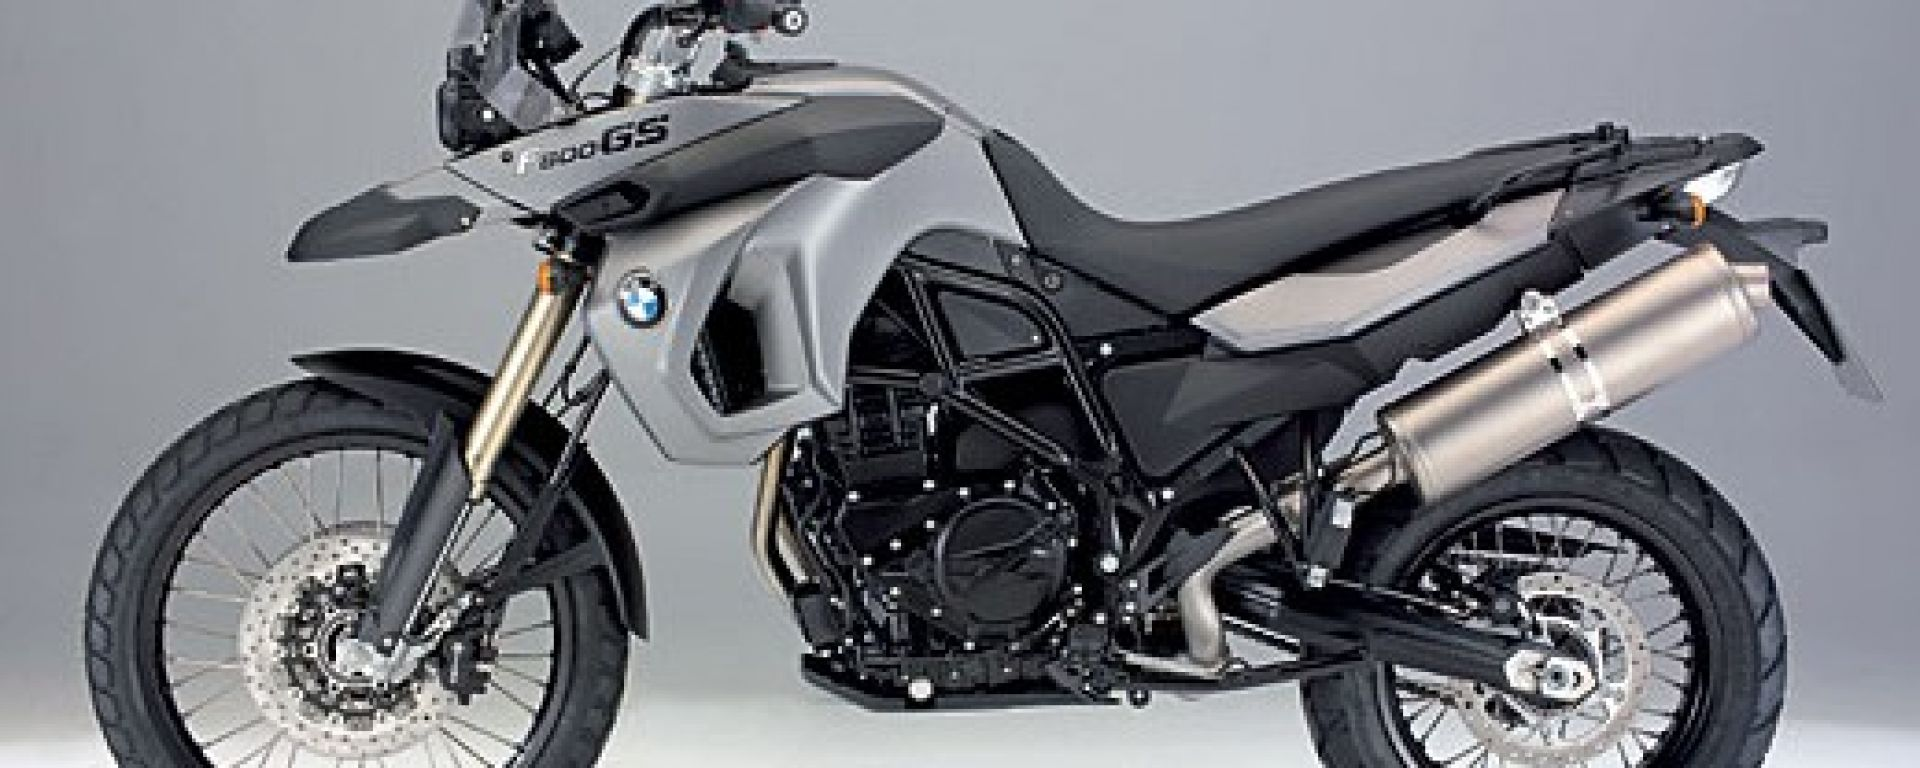 prova bmw f 800 gs motorbox. Black Bedroom Furniture Sets. Home Design Ideas